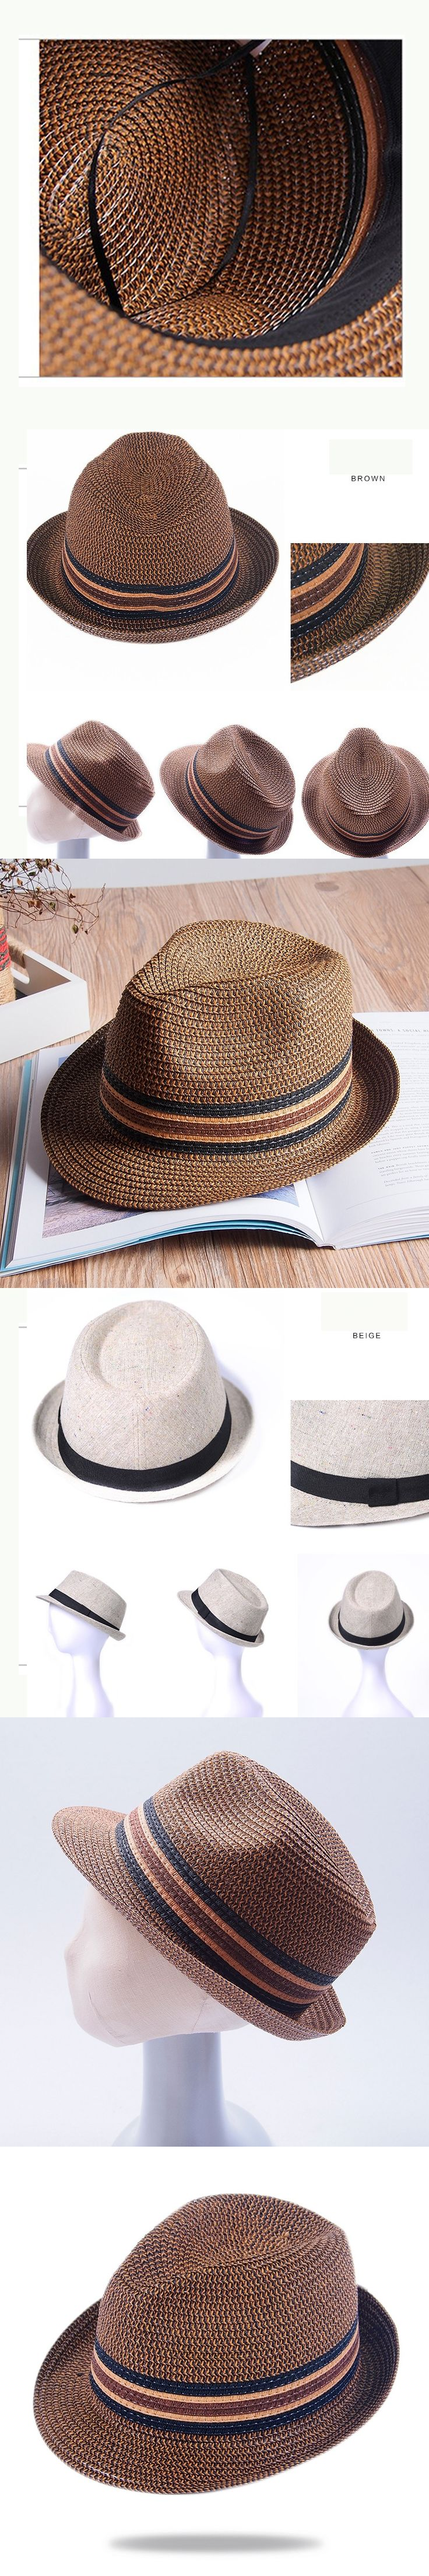 2017 Breathable cool The Panama Hat for Male Simple Formal Casual knitted crochet straw Fedoras hats men Apparel Accessories